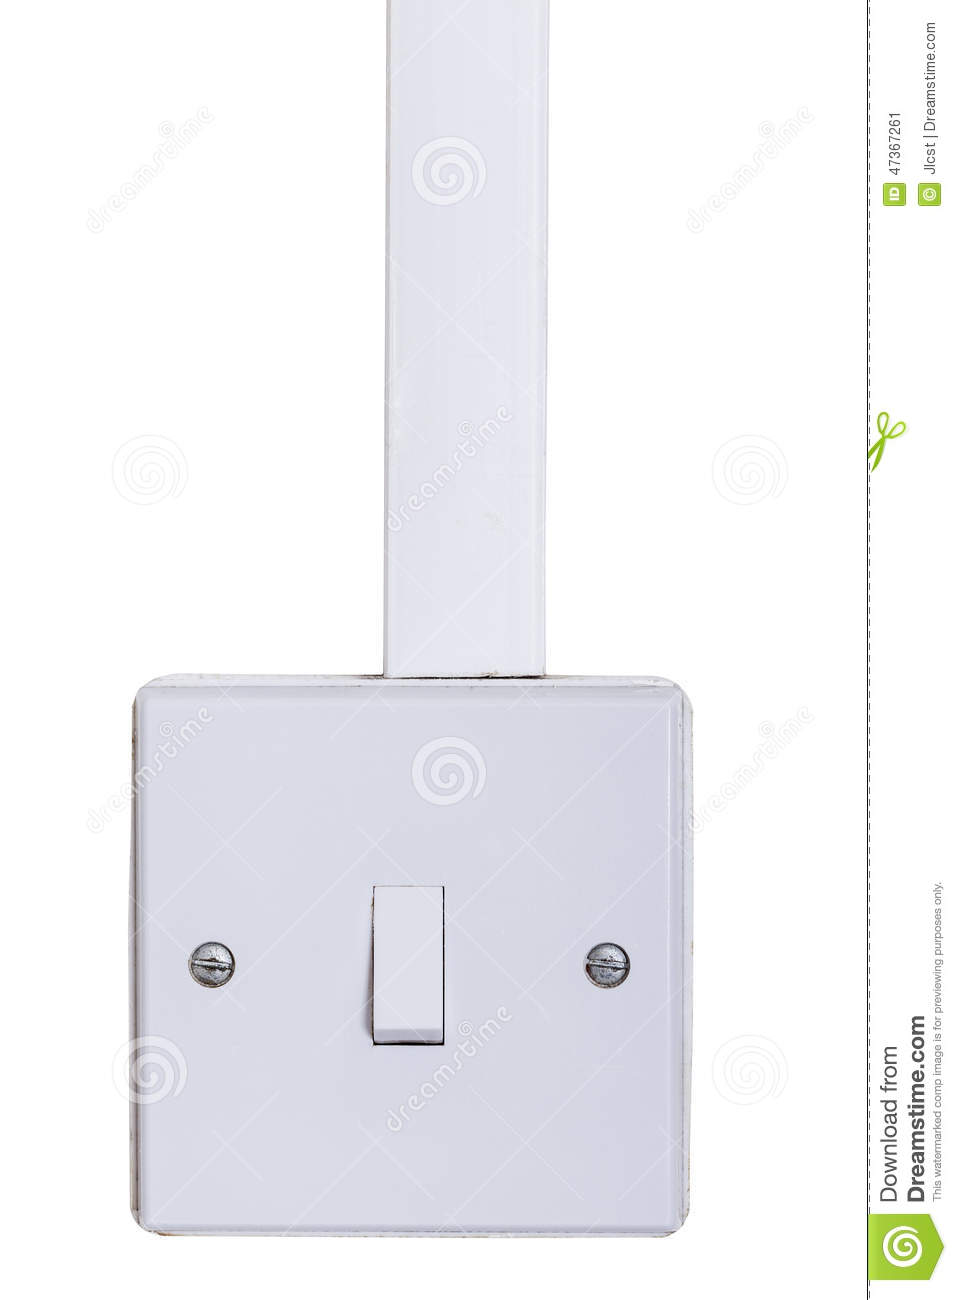 how to change a light switch in an old house